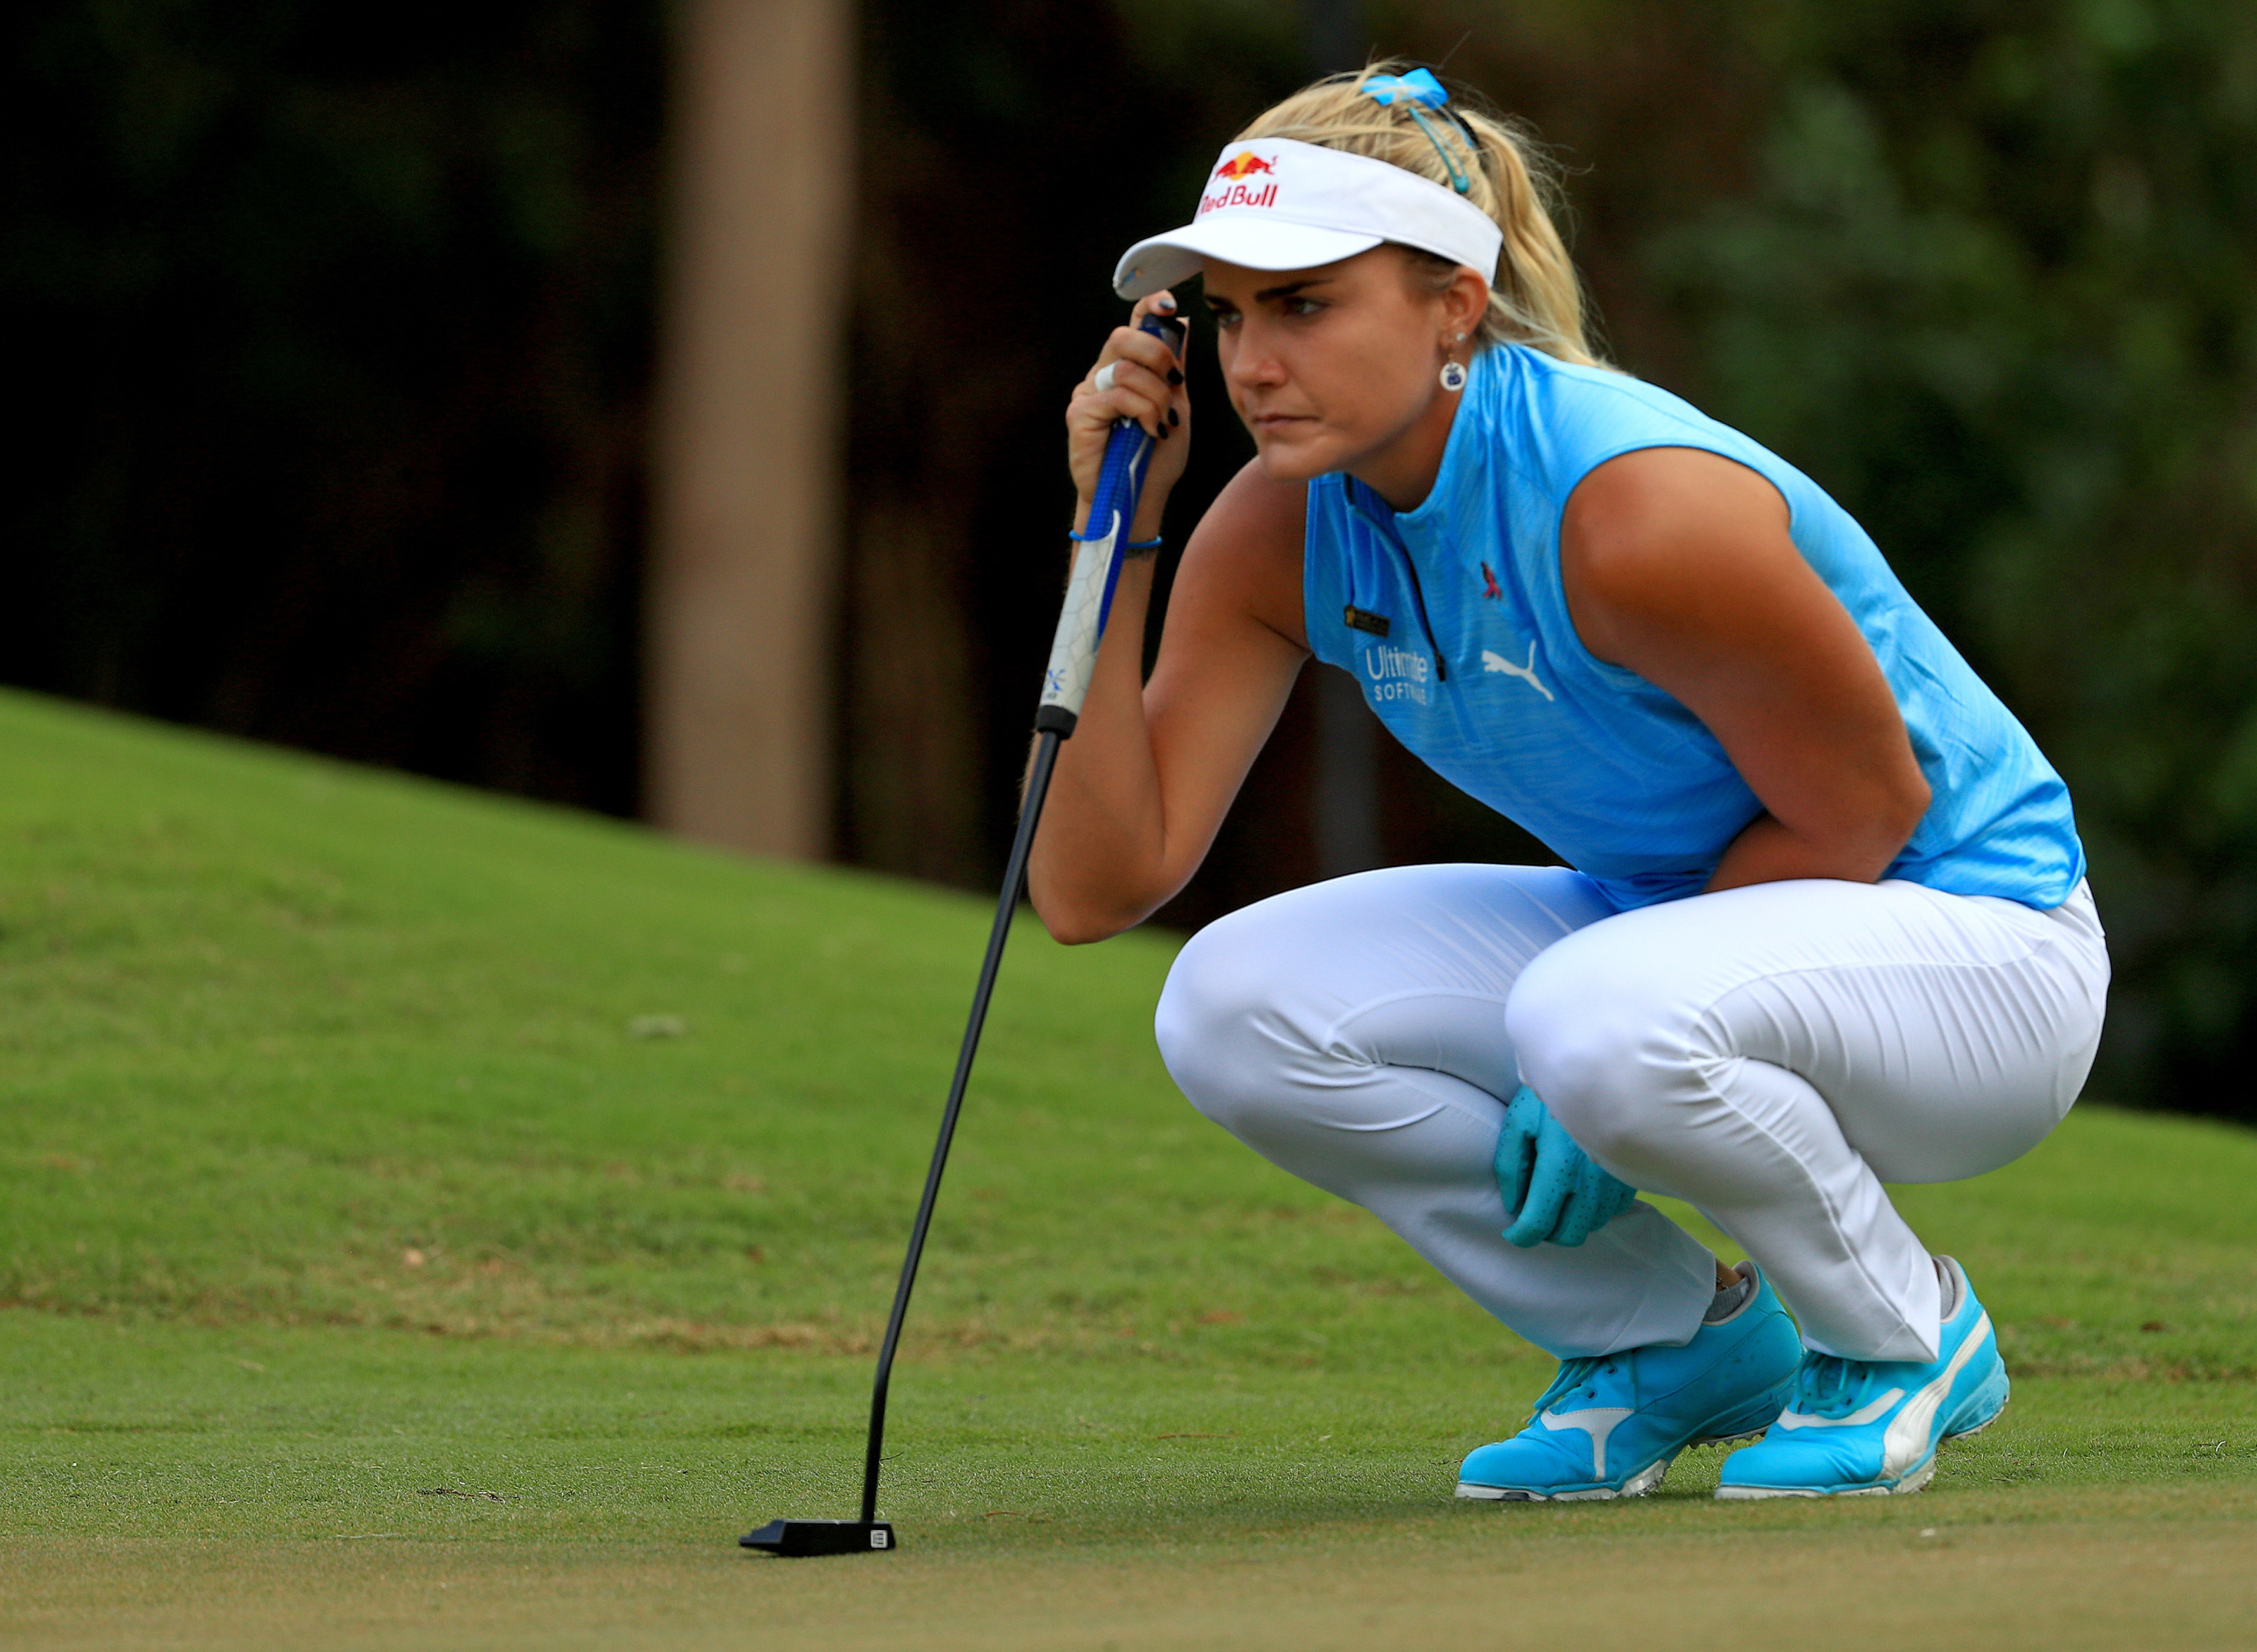 Us open golf betting games app betting odds for ufc 194